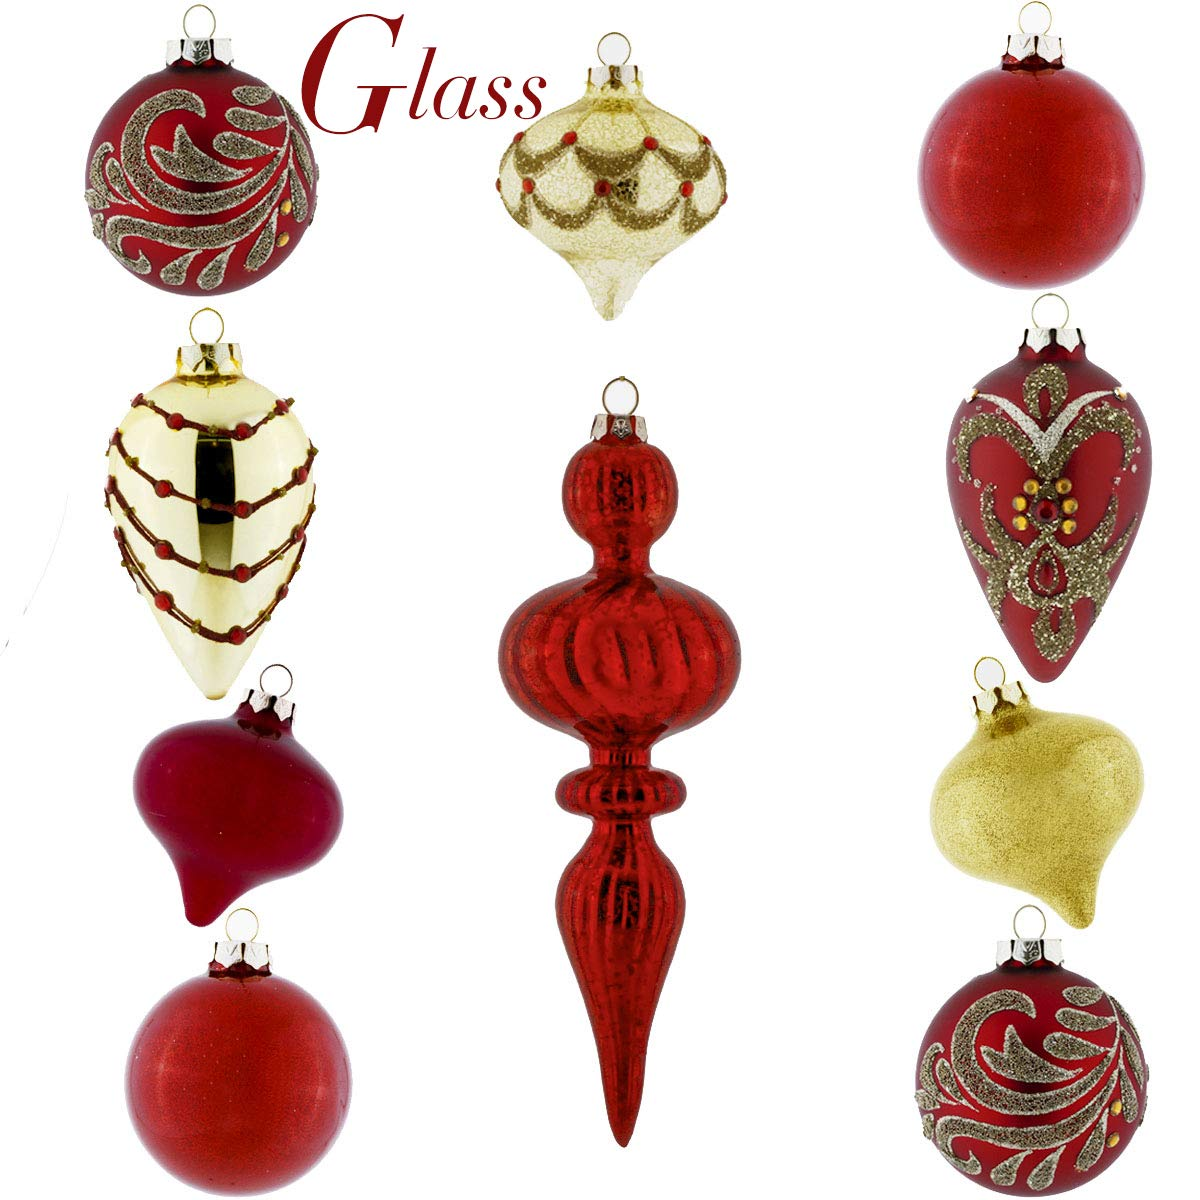 Valery Madelyn 10ct Luxury Glass Christmas Ball Ornaments Red Gold, 3.15inch-4.72inch,Themed Tree Skirt(Not Included) EG0106-0003